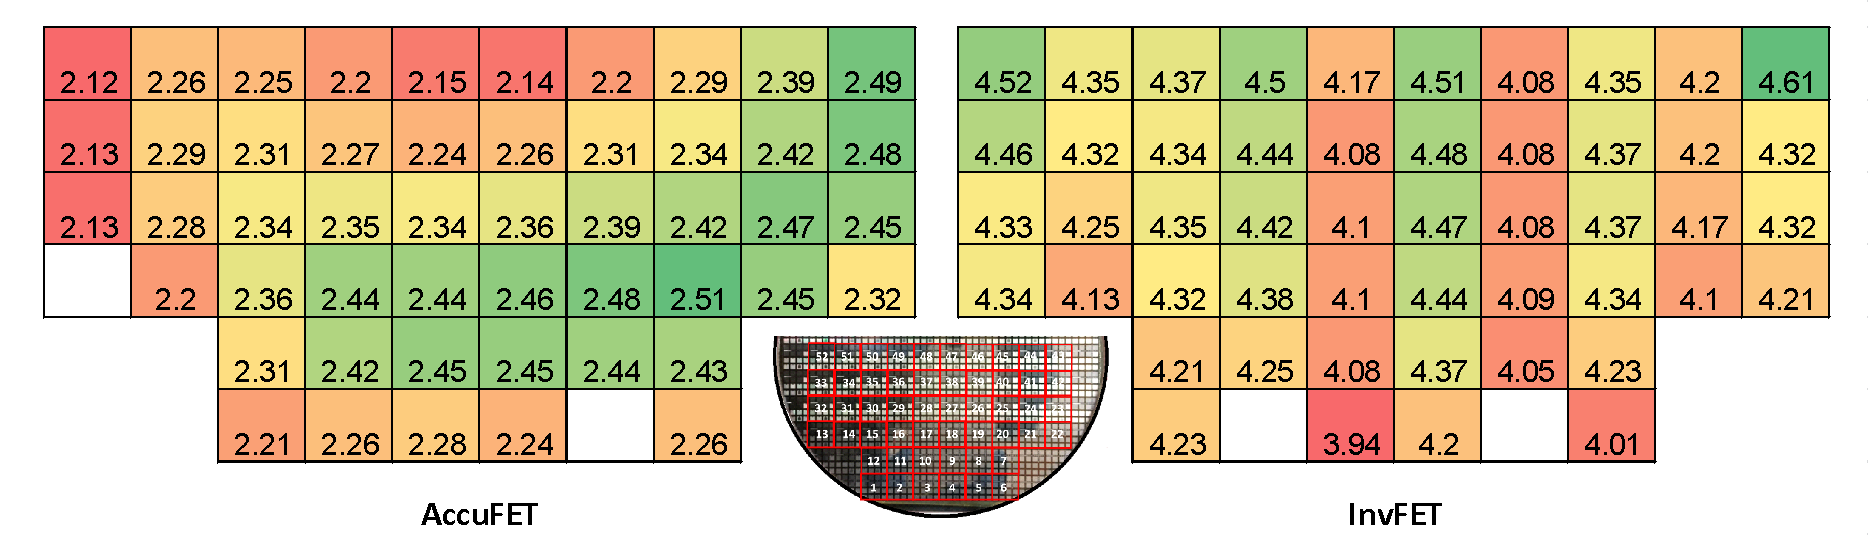 Fig. 9. Distribution of threshold voltages of SiC AccuFETs and InvFETs fabricated on 6-inch SiC wafers. A half-cut picture of a fully processed 6-inch wafer is also shown in the middle. Threshold voltages of AccuFETs show radial pattern across the wafer while those of InvFETs show random distribution.